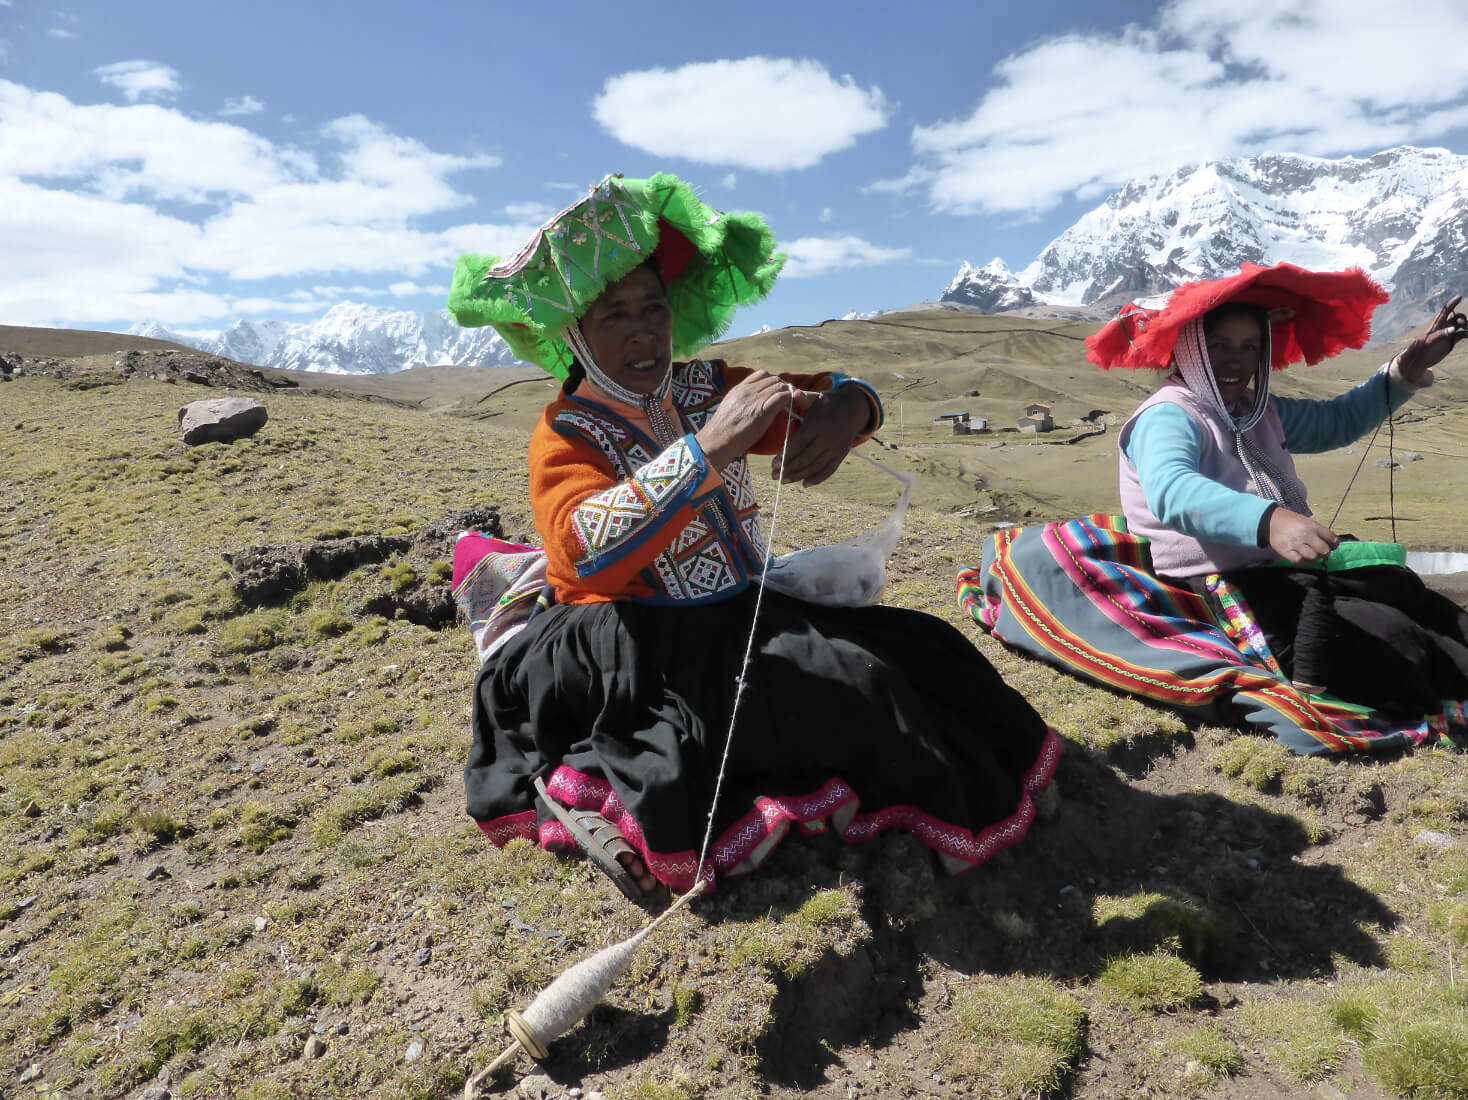 Two Peruvian women deftly spinning yarn by hand from wool fleece whilst taking a rest from walking. Snow capped Peruvian Andes in the distance.